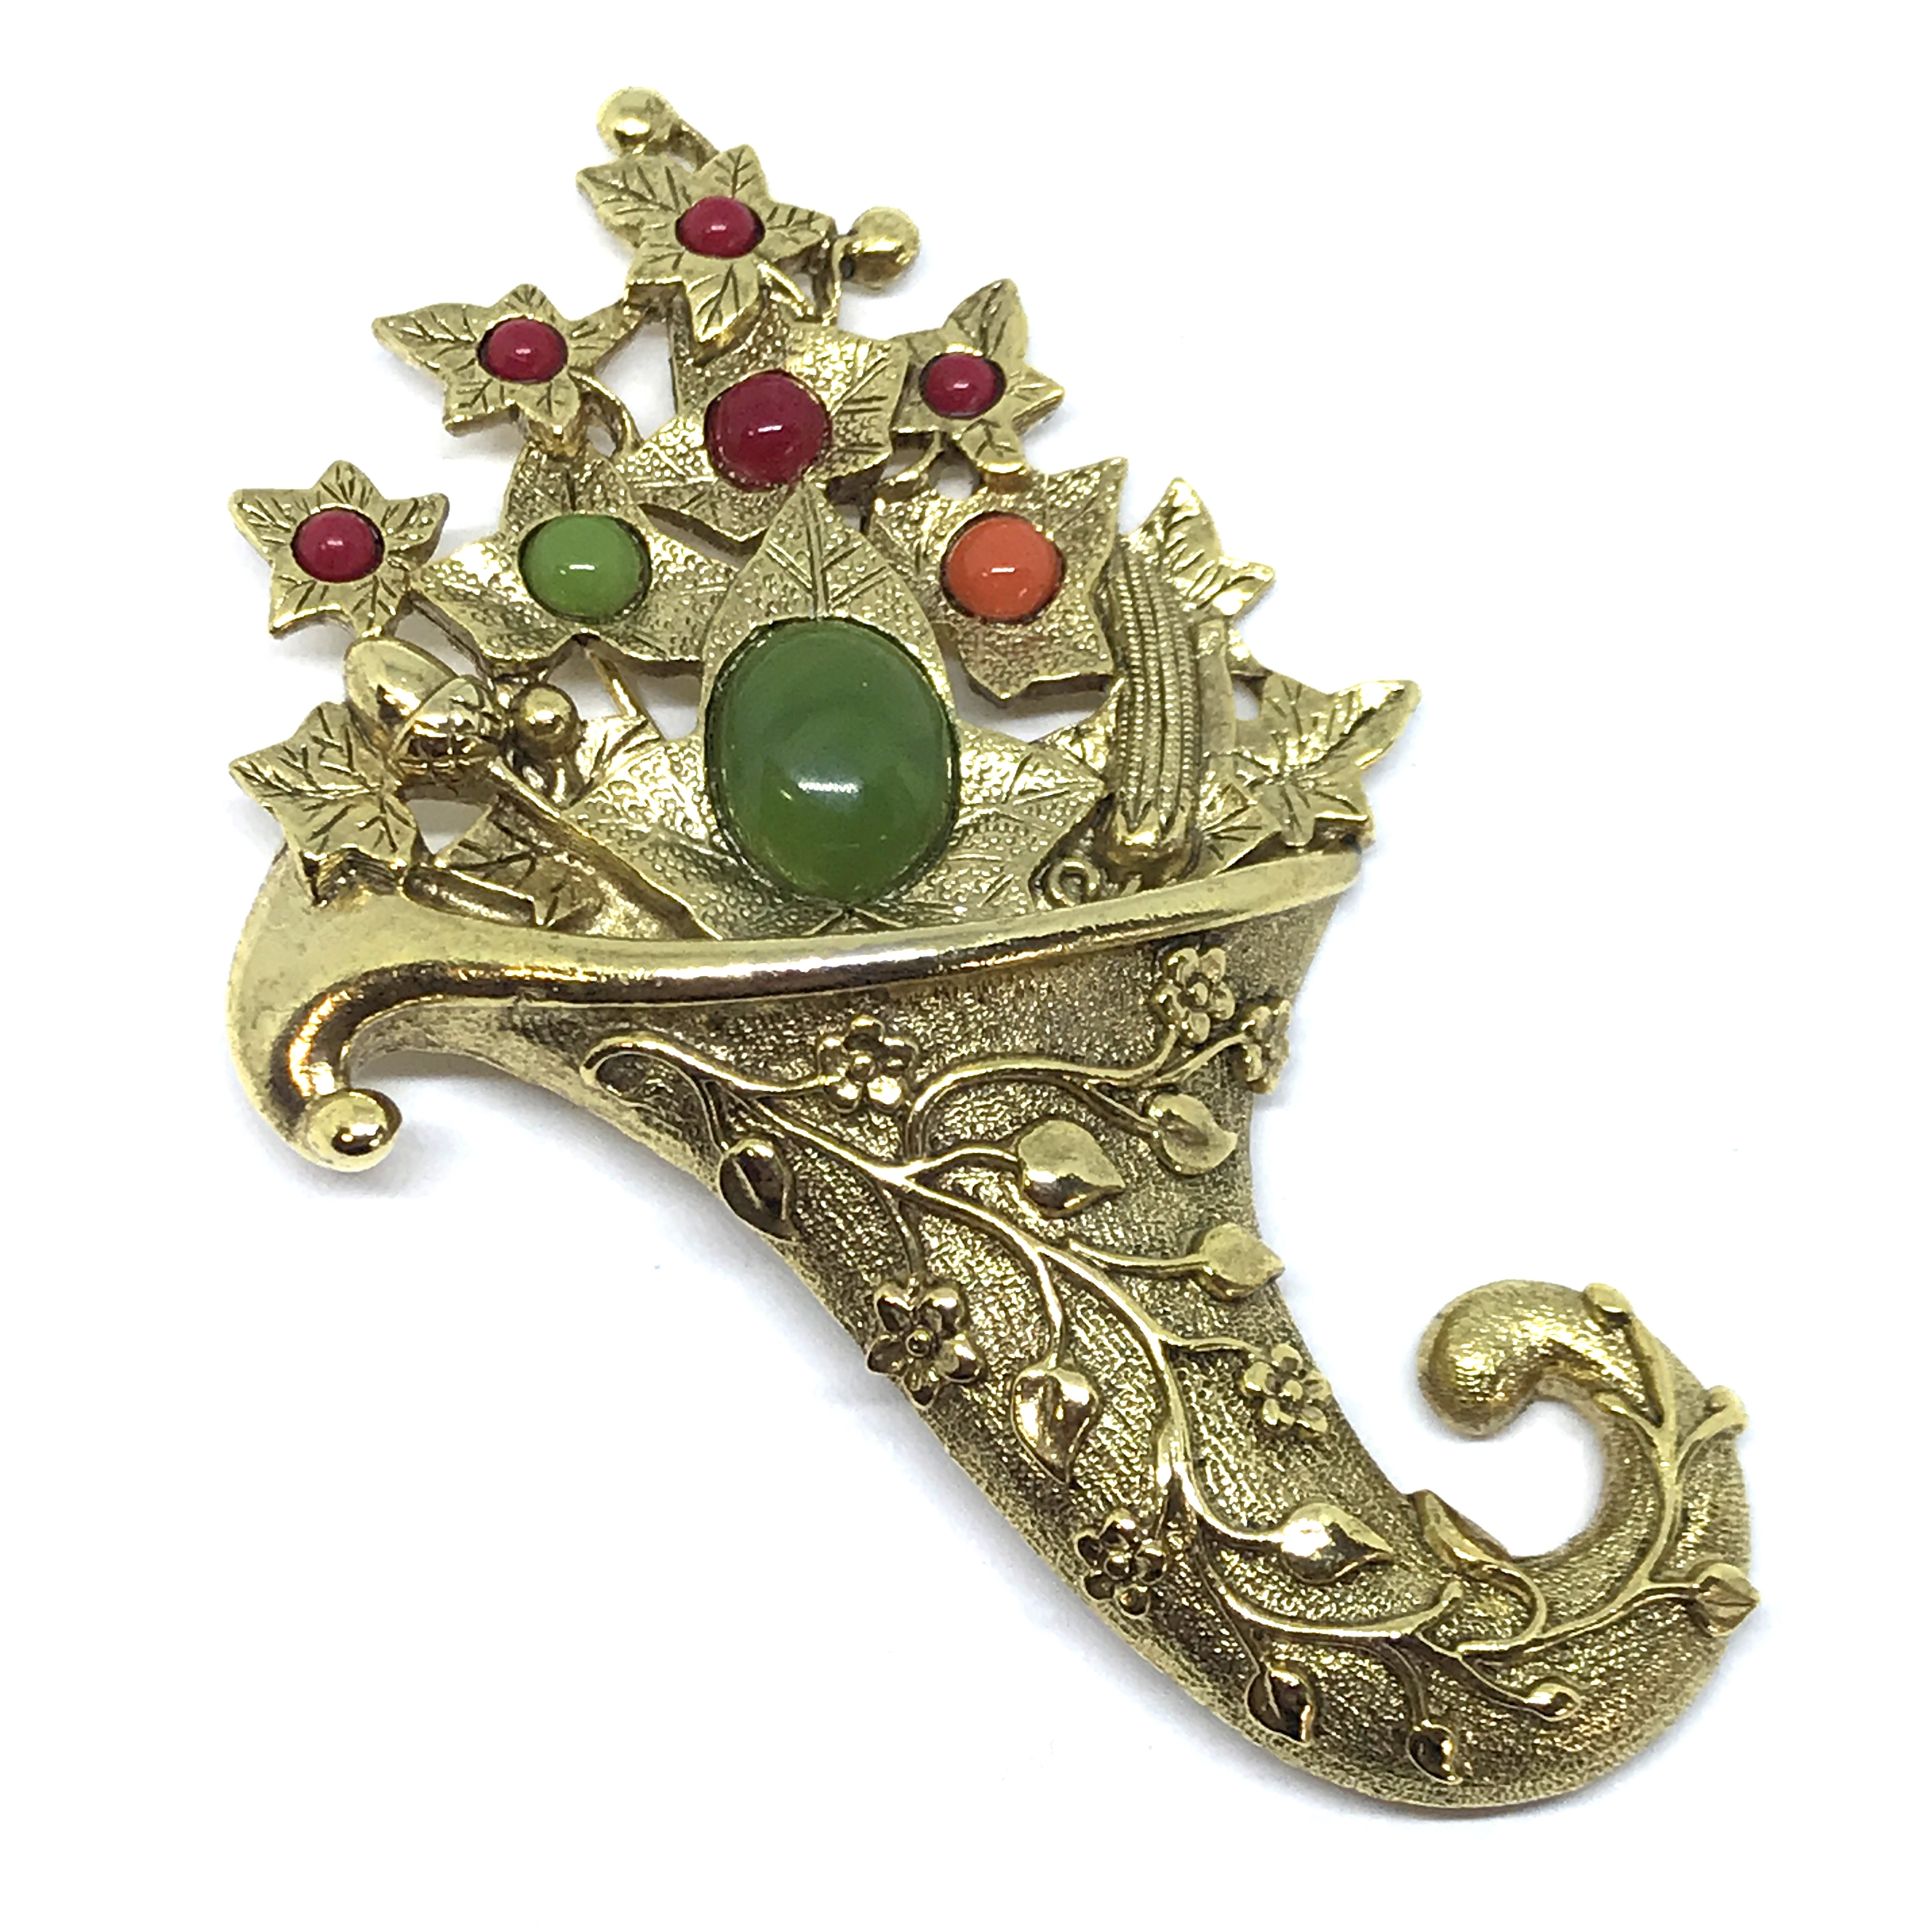 Cornucopia Brooch, Gold, 1928 Jewelry Co., 01440, green, red, and orange cabochon accents, gold finish, autumn colors, fall colors, vintage jewelry, collectable jewelry, Collectors item, collector's piece